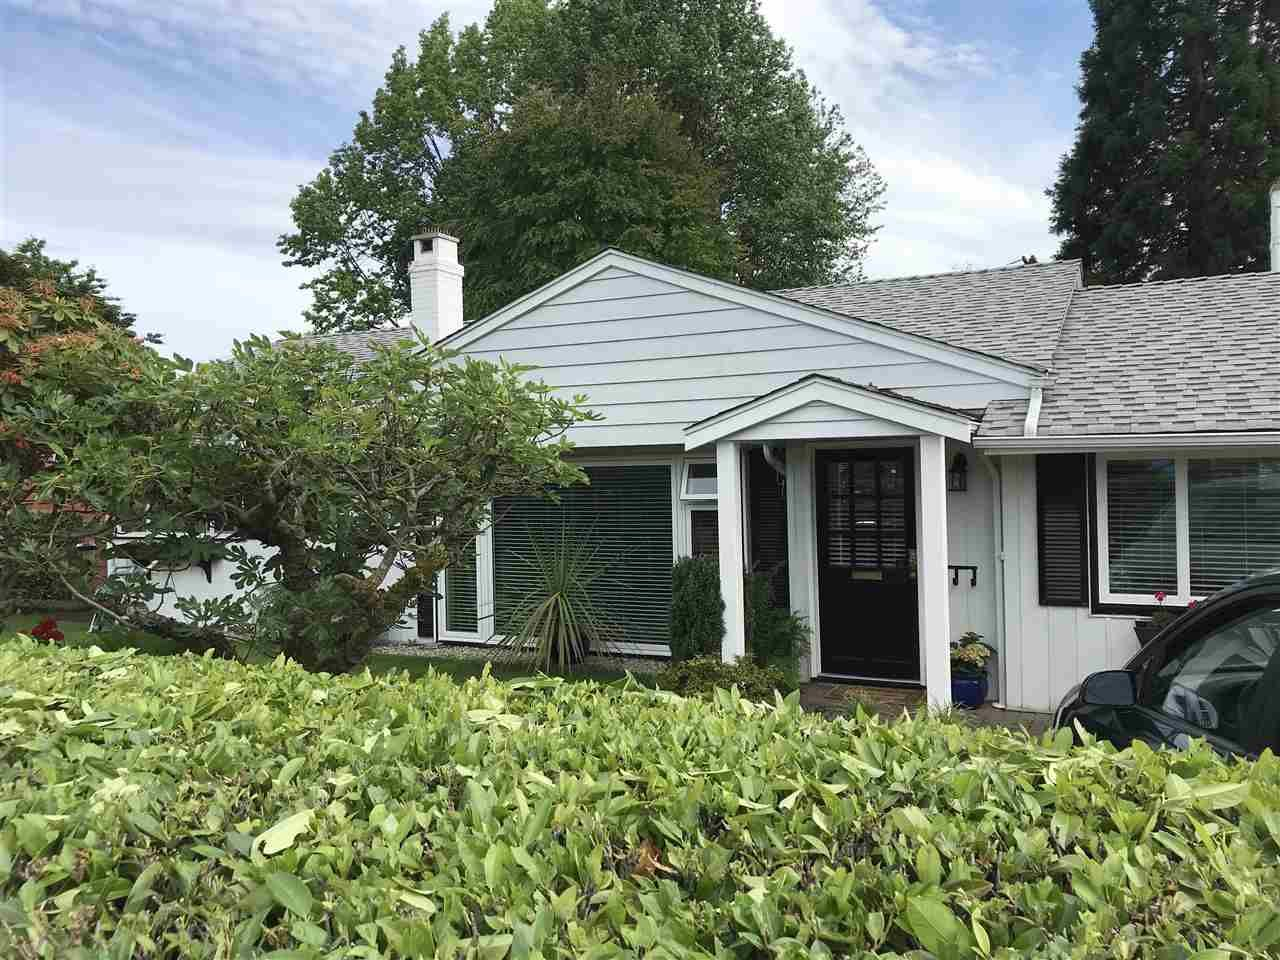 """Main Photo: 1329 COTTONWOOD Place in North Vancouver: Norgate House for sale in """"Norgate"""" : MLS®# R2375770"""